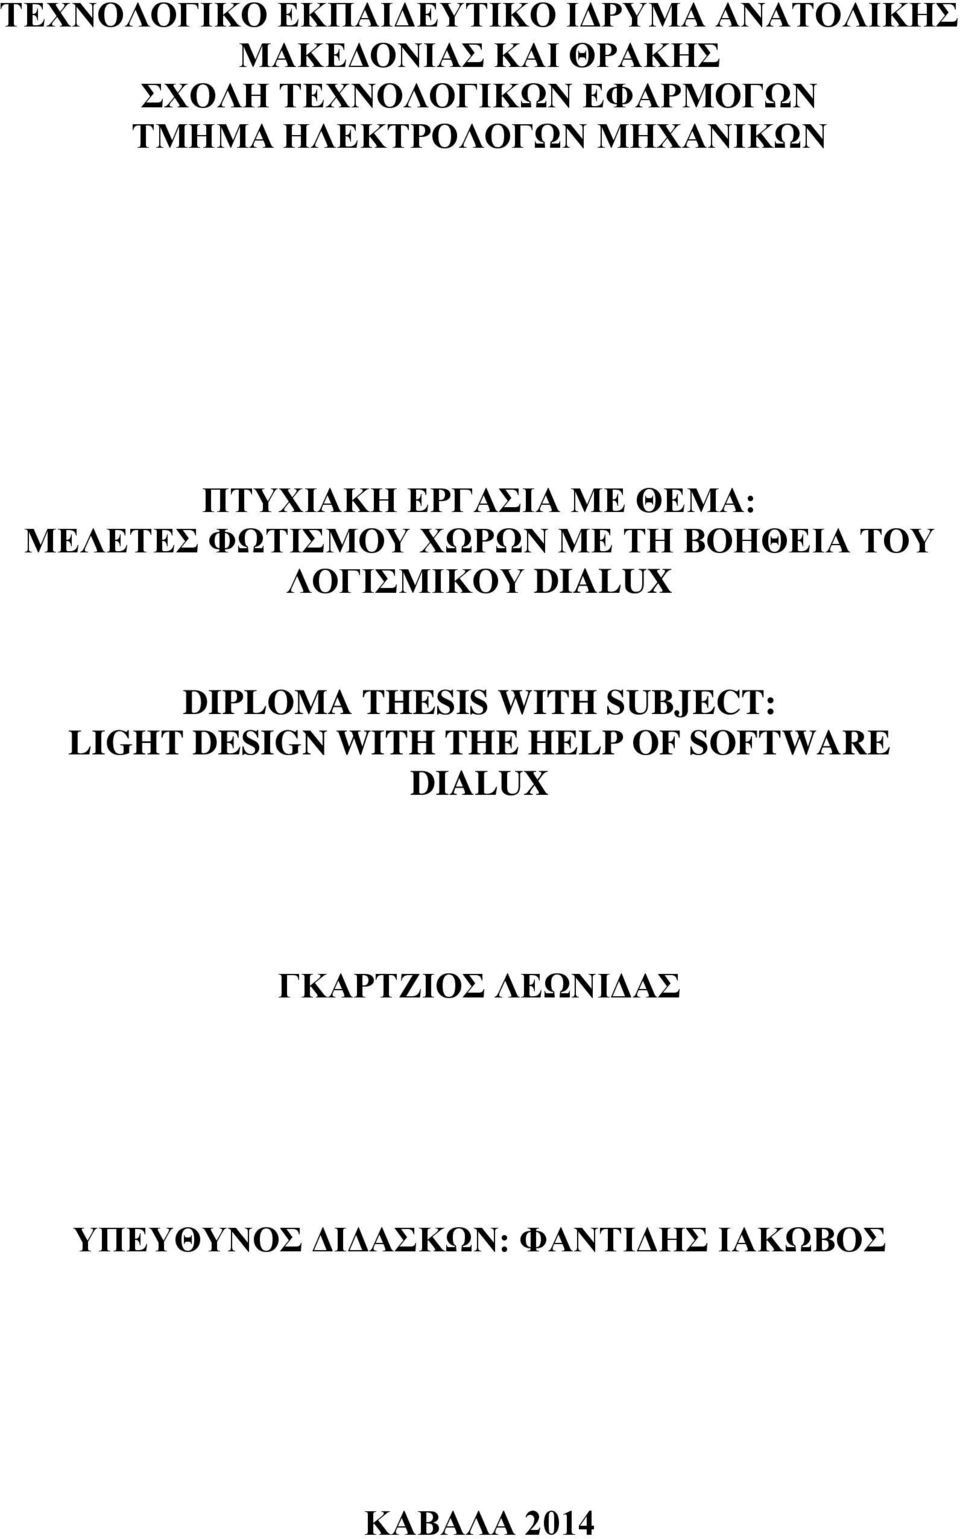 ΜΕ ΤΗ ΒΟΗΘΕΙΑ ΤΟΥ ΛΟΓΙΣΜΙΚΟΥ DIALUX DIPLOMA THESIS WITH SUBJECT: LIGHT DESIGN WITH THE